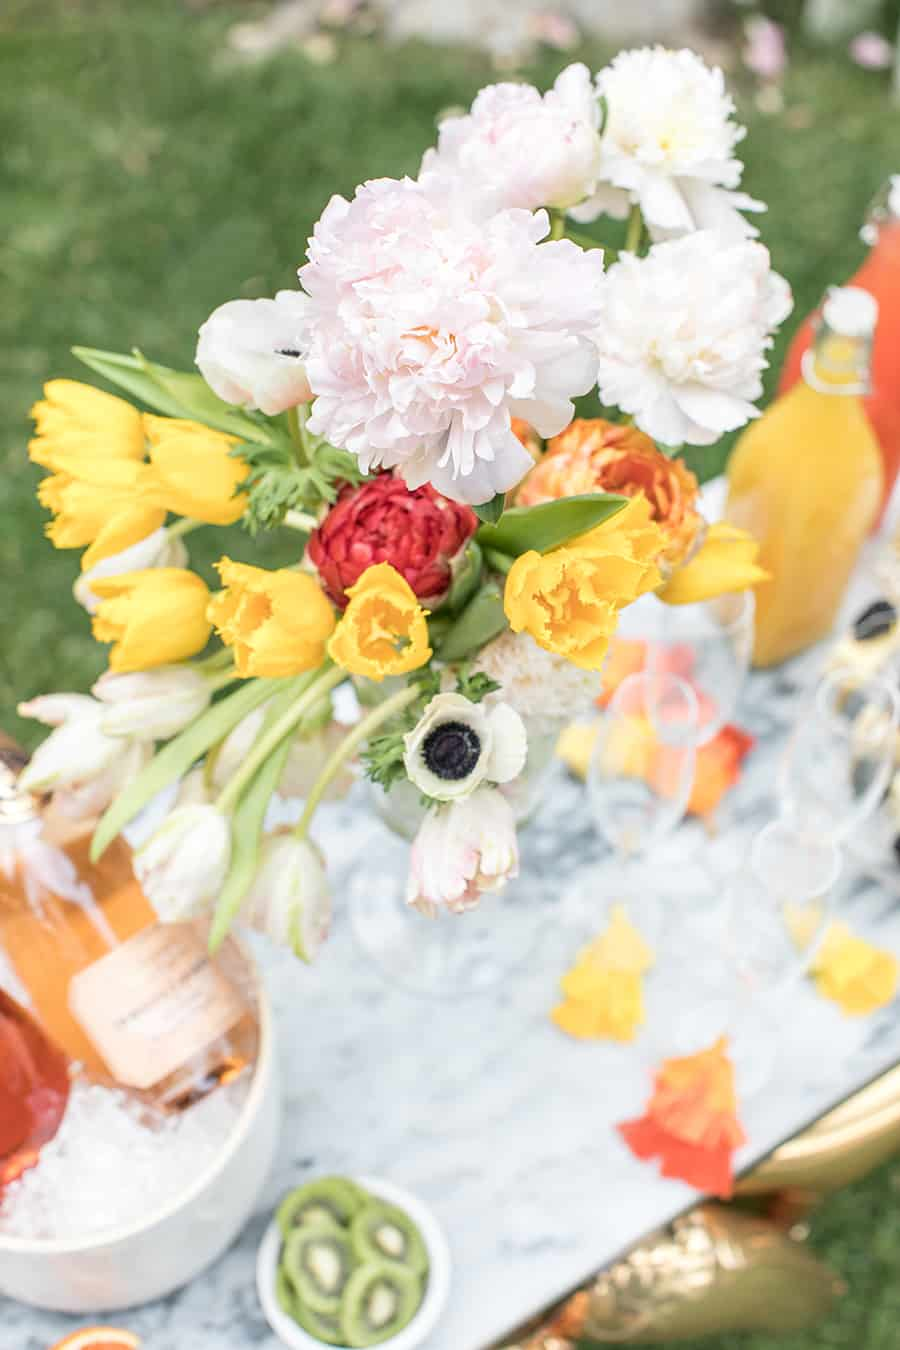 Beautiful flowers for a college graduation bubbly bar.